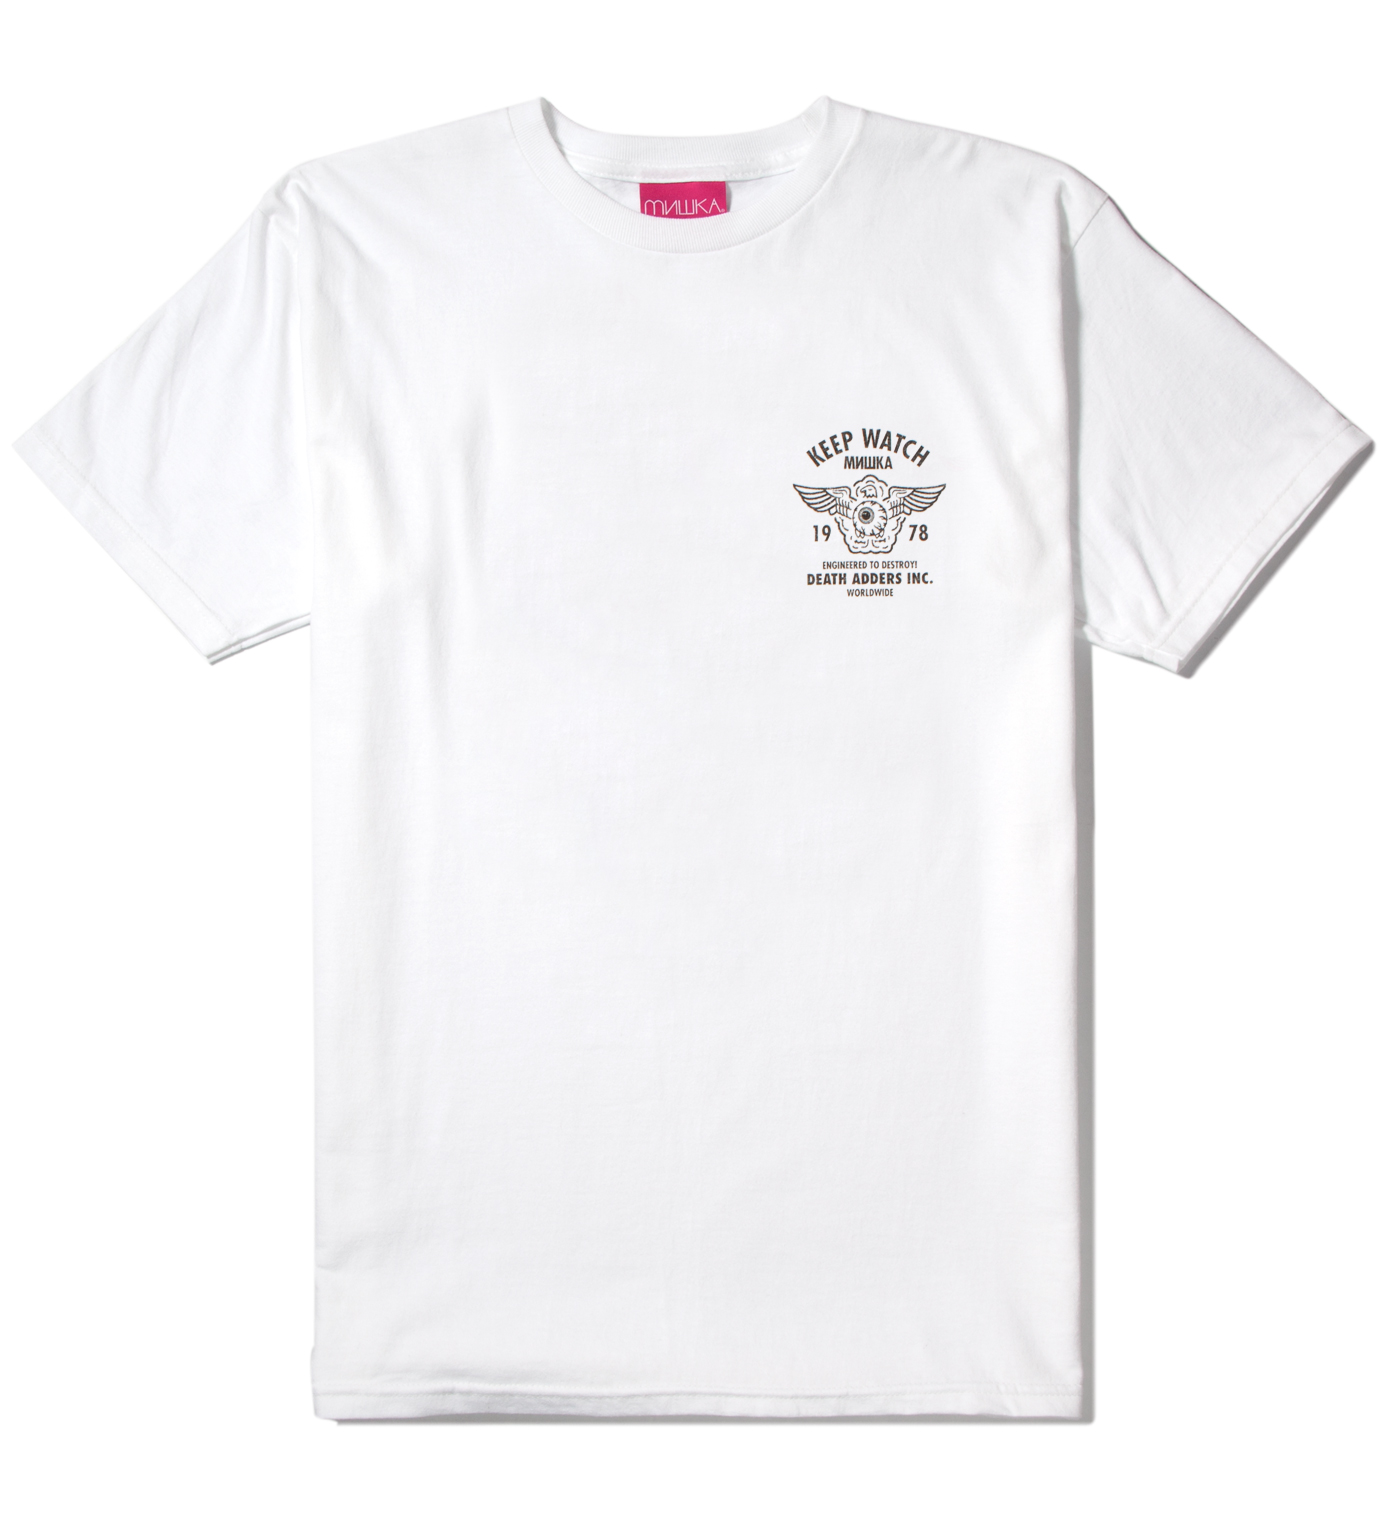 Mishka White Easy Rider T-Shirt